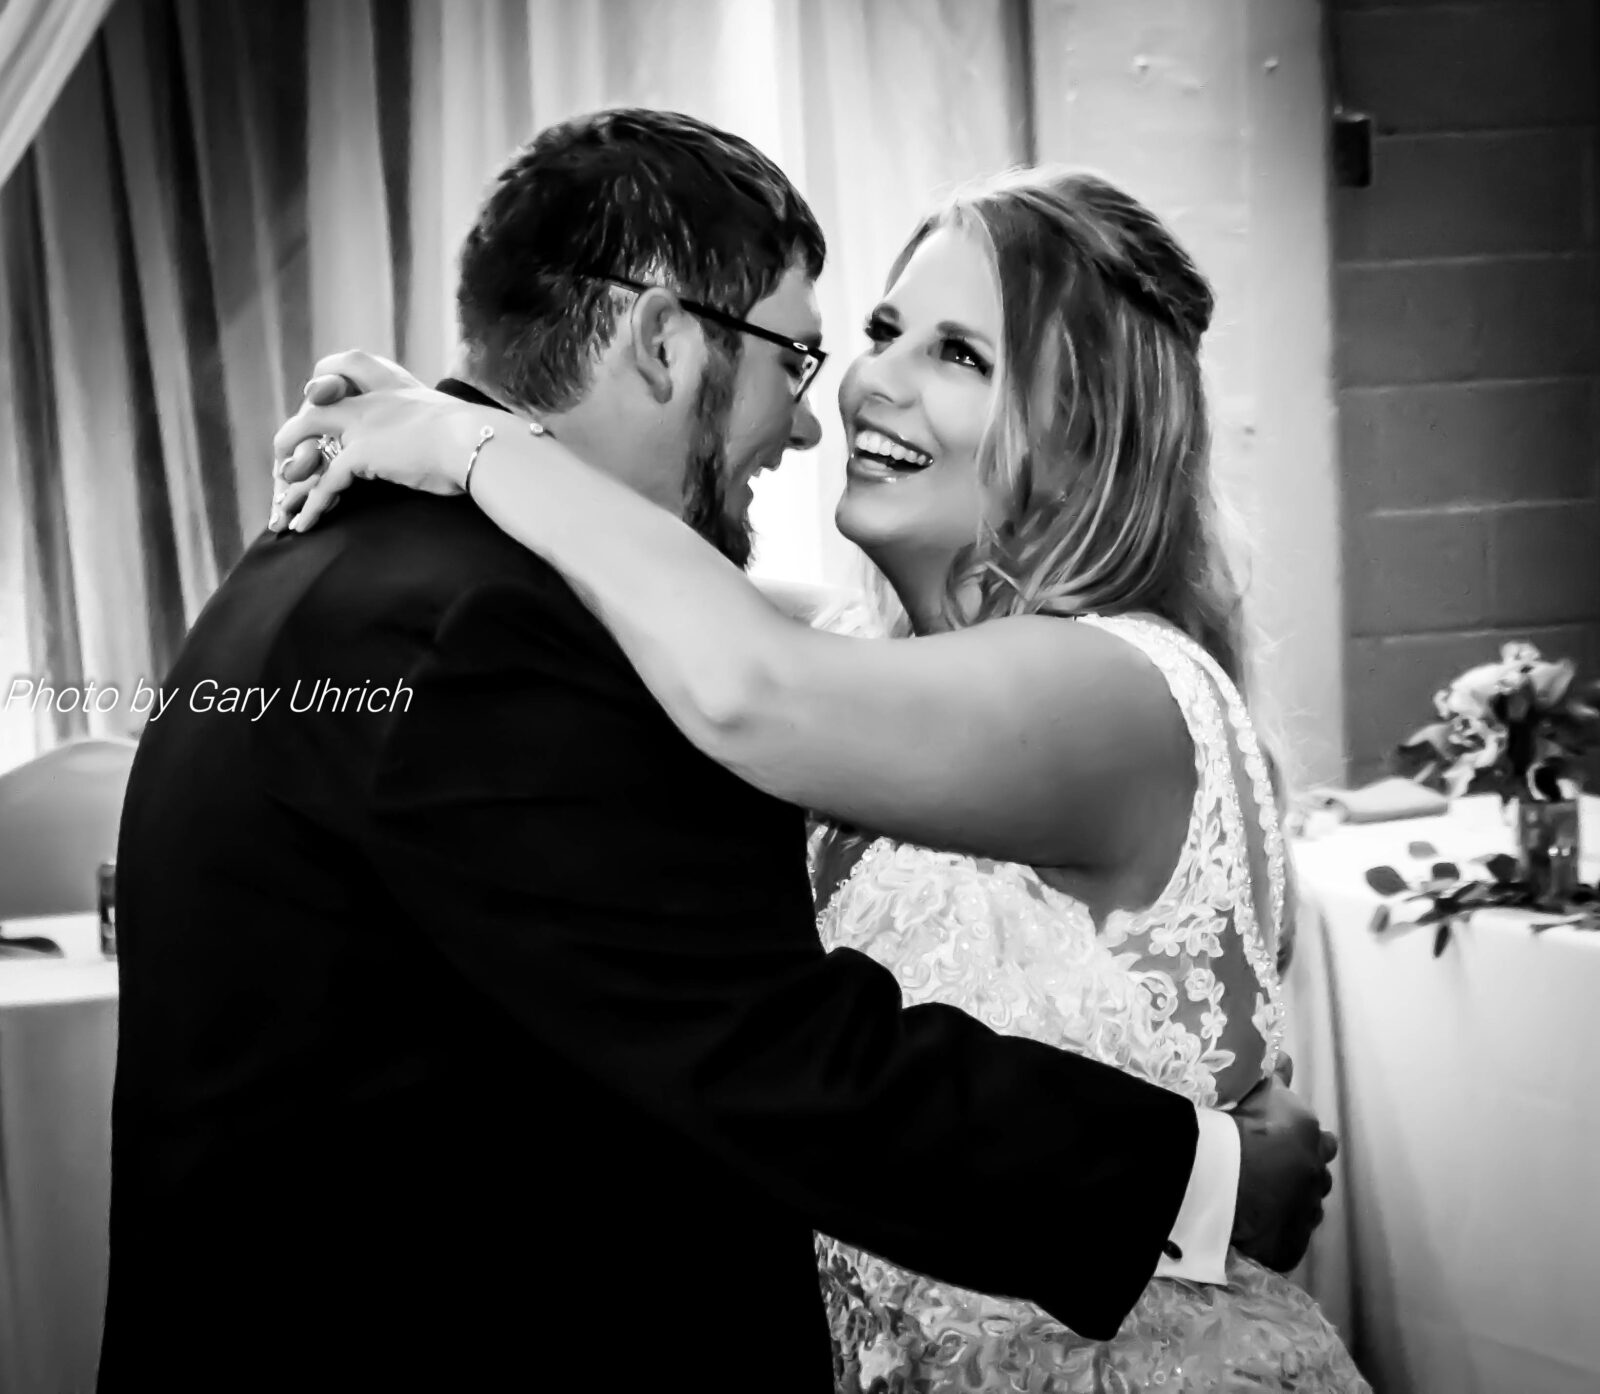 Veronica and Jordan, First Dance, Weborg 21 Centre, Gering, NE, Gary Uhrich, The DJ Music System, Scottsbluff, Nebraska